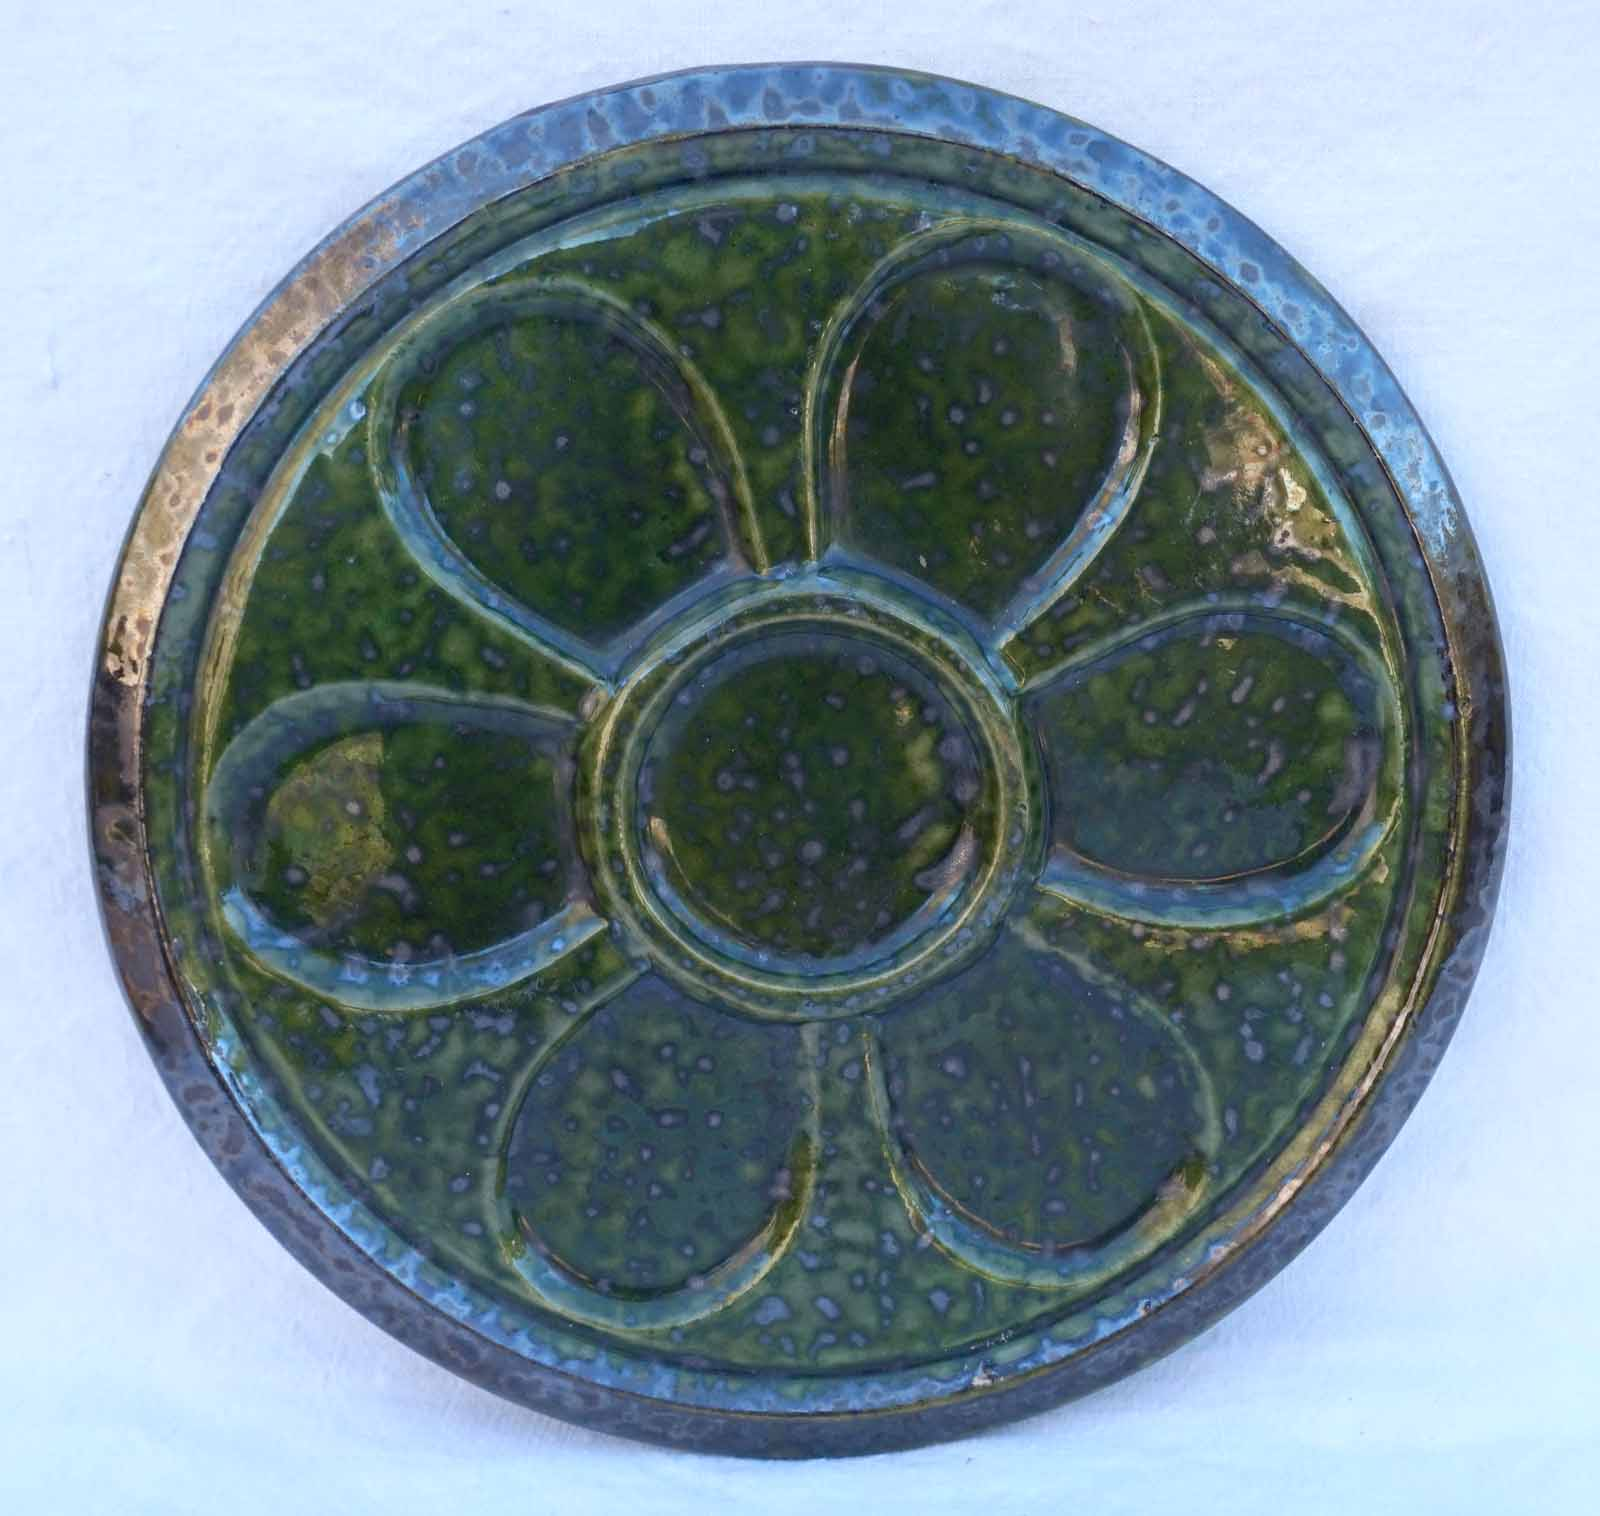 S FRANCE FAIENCE MAJOLICA  6 WELLS  EX COND GREEN VINTAGE OYSTER PLATE